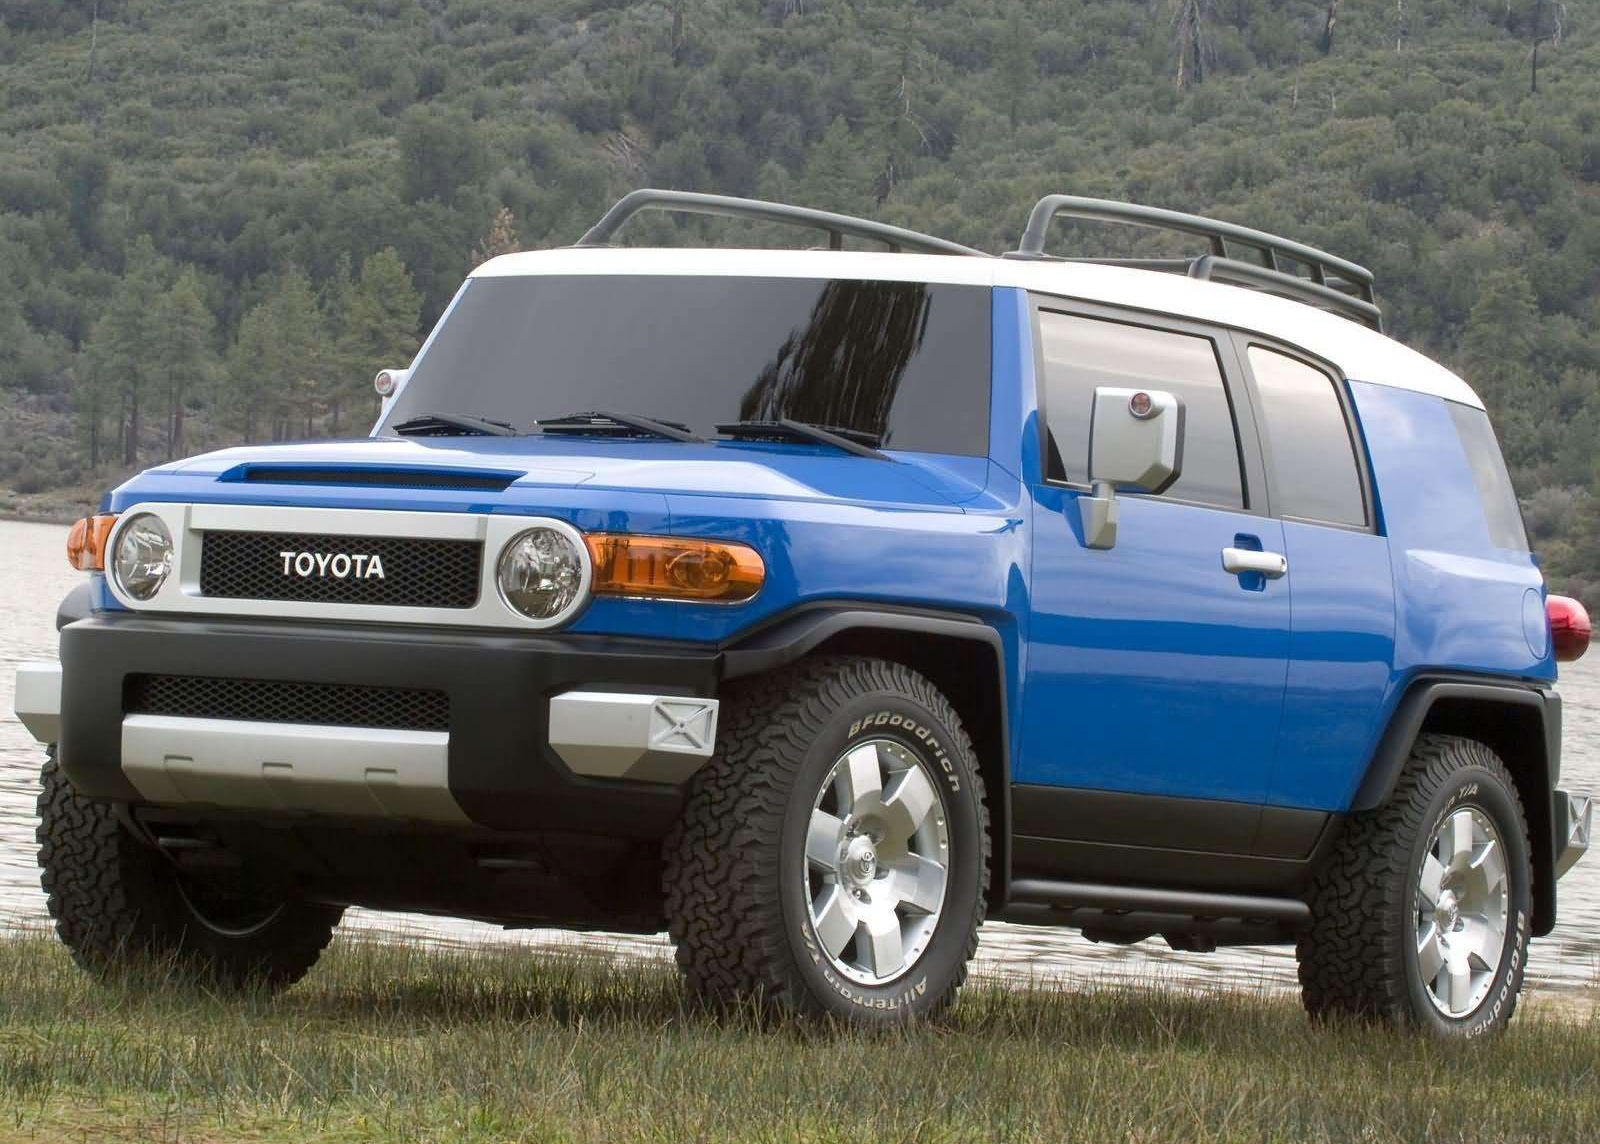 toyota 39 s considering building an fj cruiser replacement carscoops. Black Bedroom Furniture Sets. Home Design Ideas